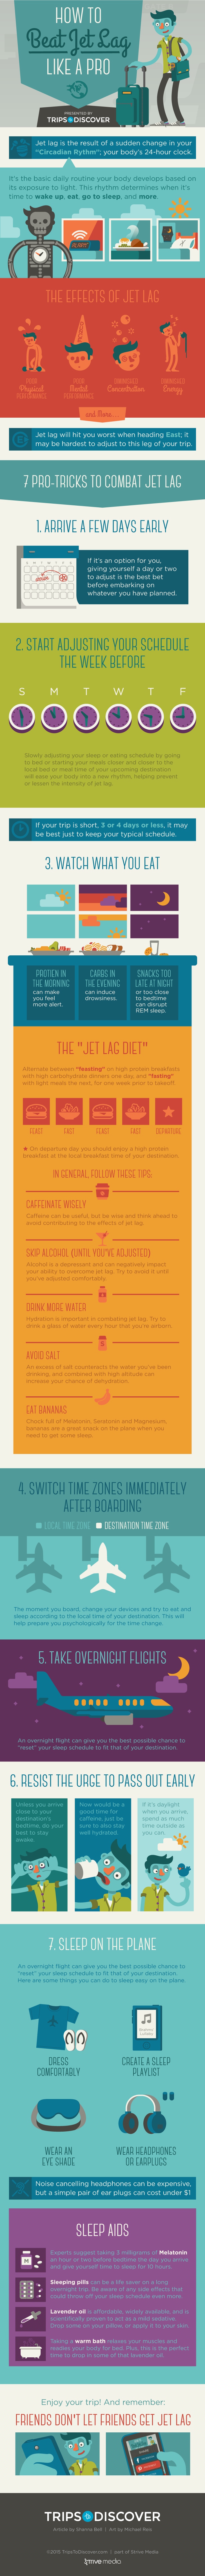 Infographic-Beat-Jet-Lag-Like-a-Pro